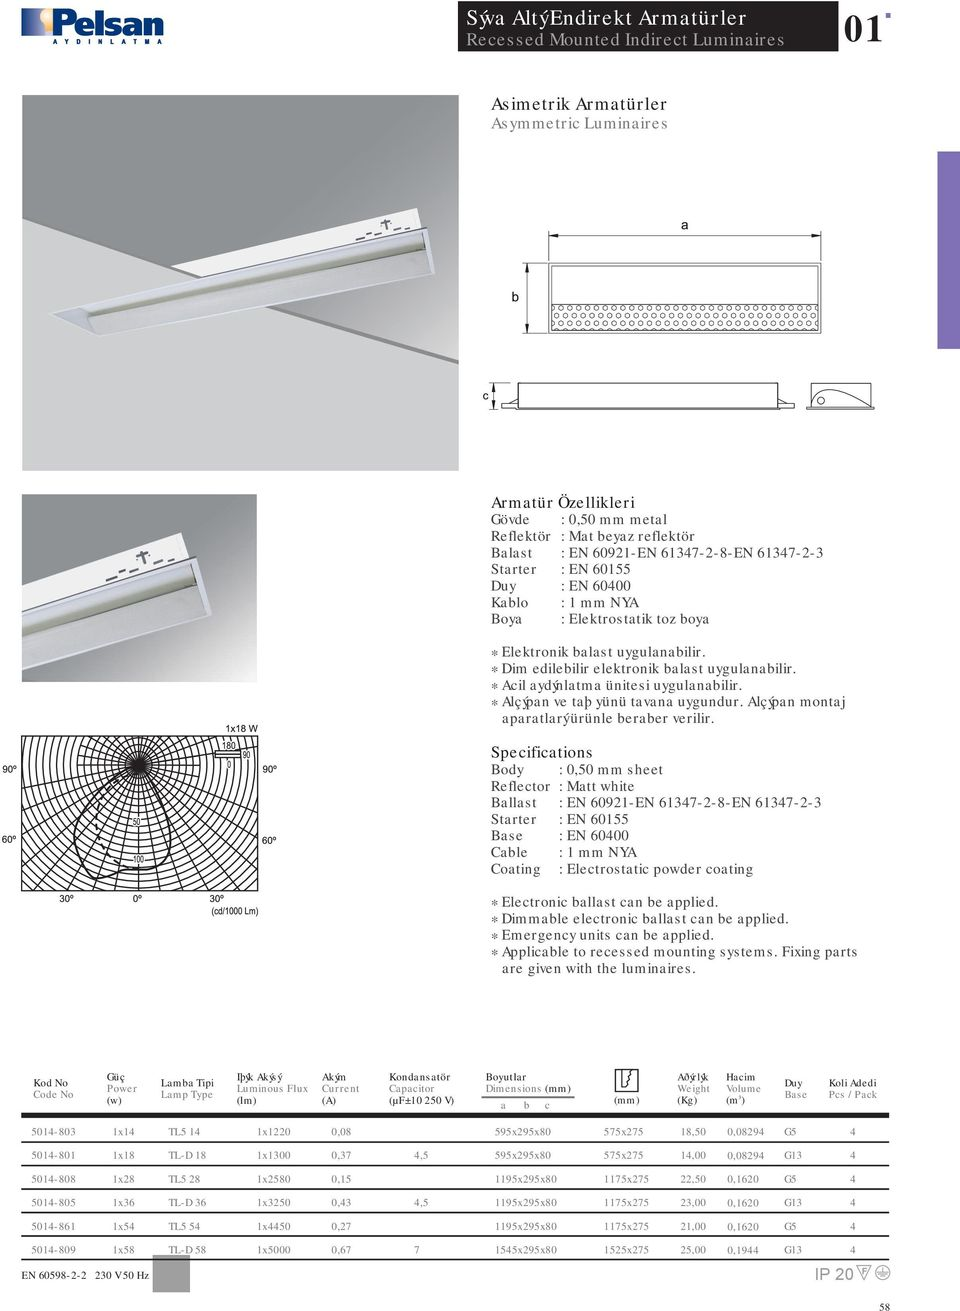 Body : 0,50 mm sheet Reflector : Matt white Ballast : EN 0921-EN 17-2-8-EN 17-2- : EN 000 Coating : Electrostatic powder coating * Applicable to recessed mounting systems.